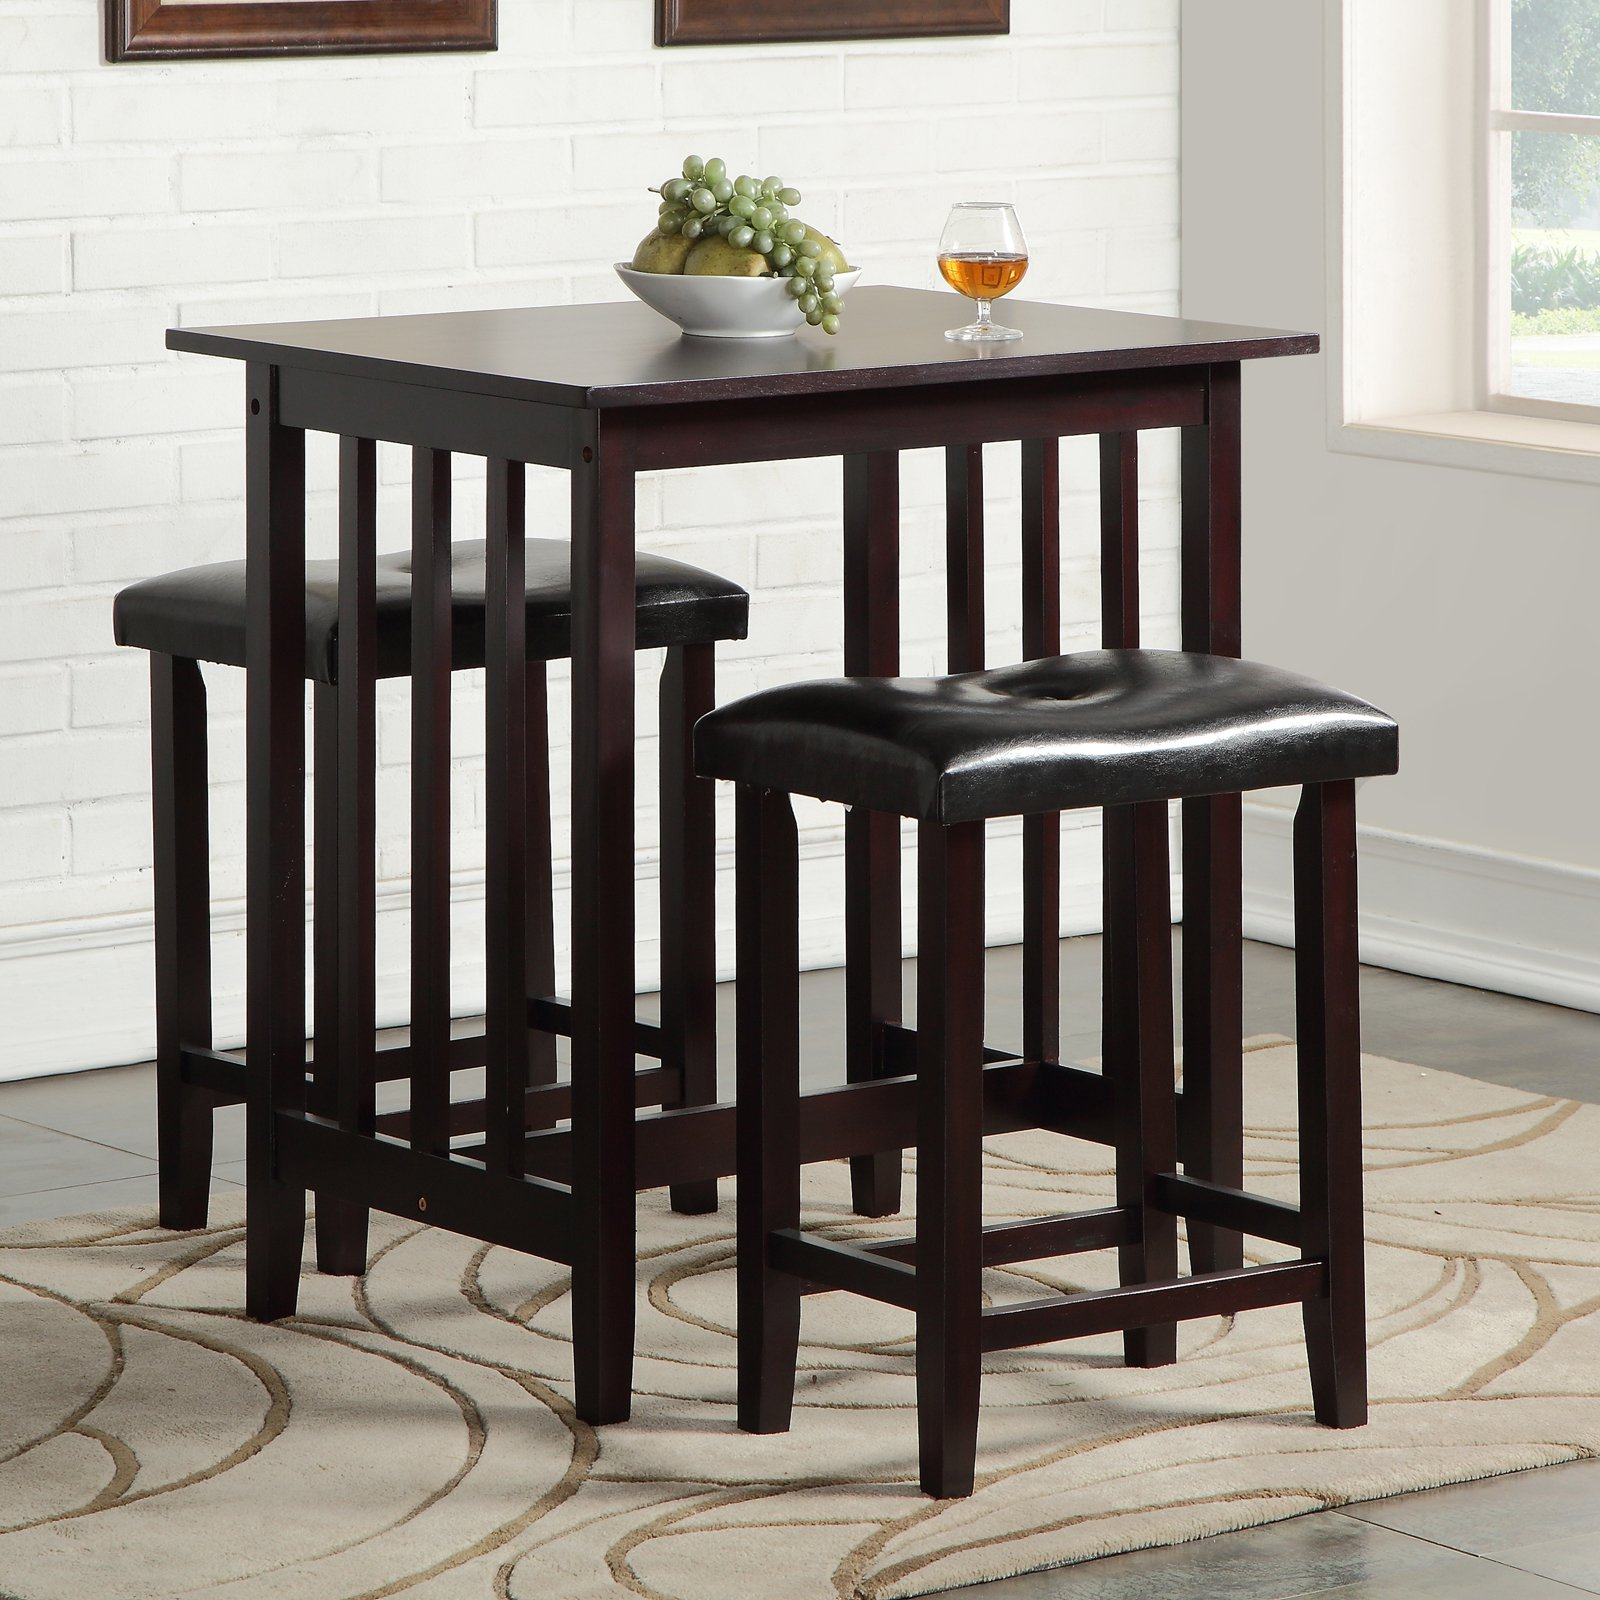 Hood Canal 3 Piece Dining Sets with 2019 Roundhill Furniture 3 Piece Counter Height Dining Table Set In 2019